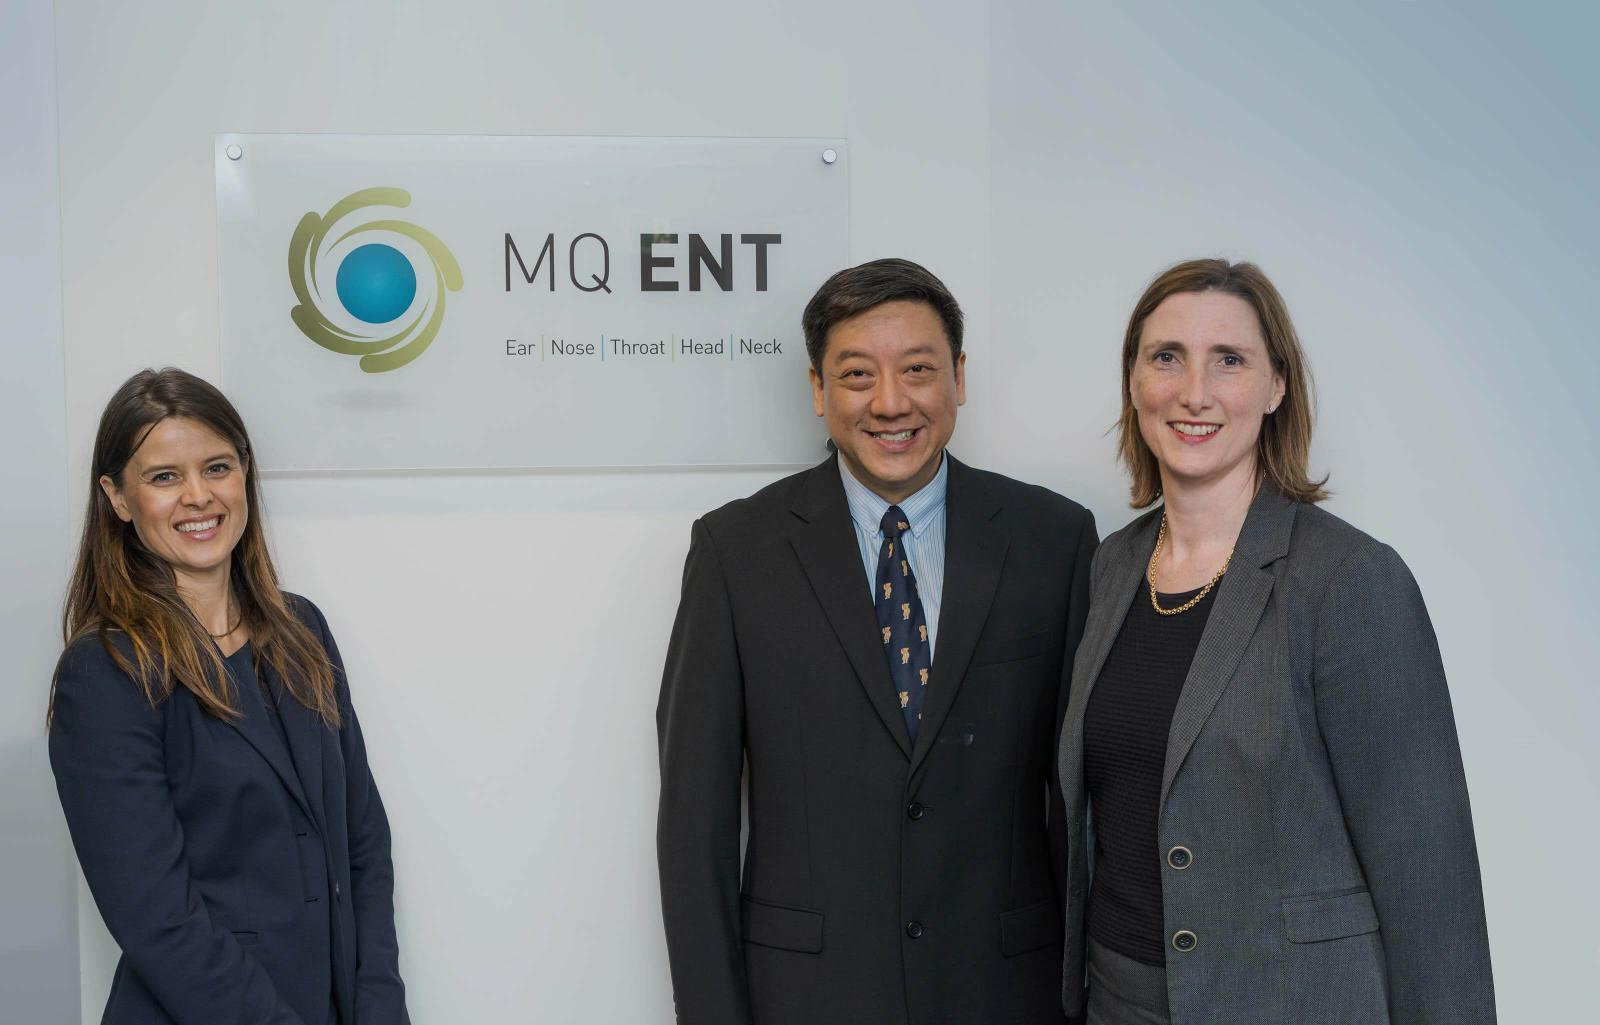 Team-members in front of MQ ENT sign